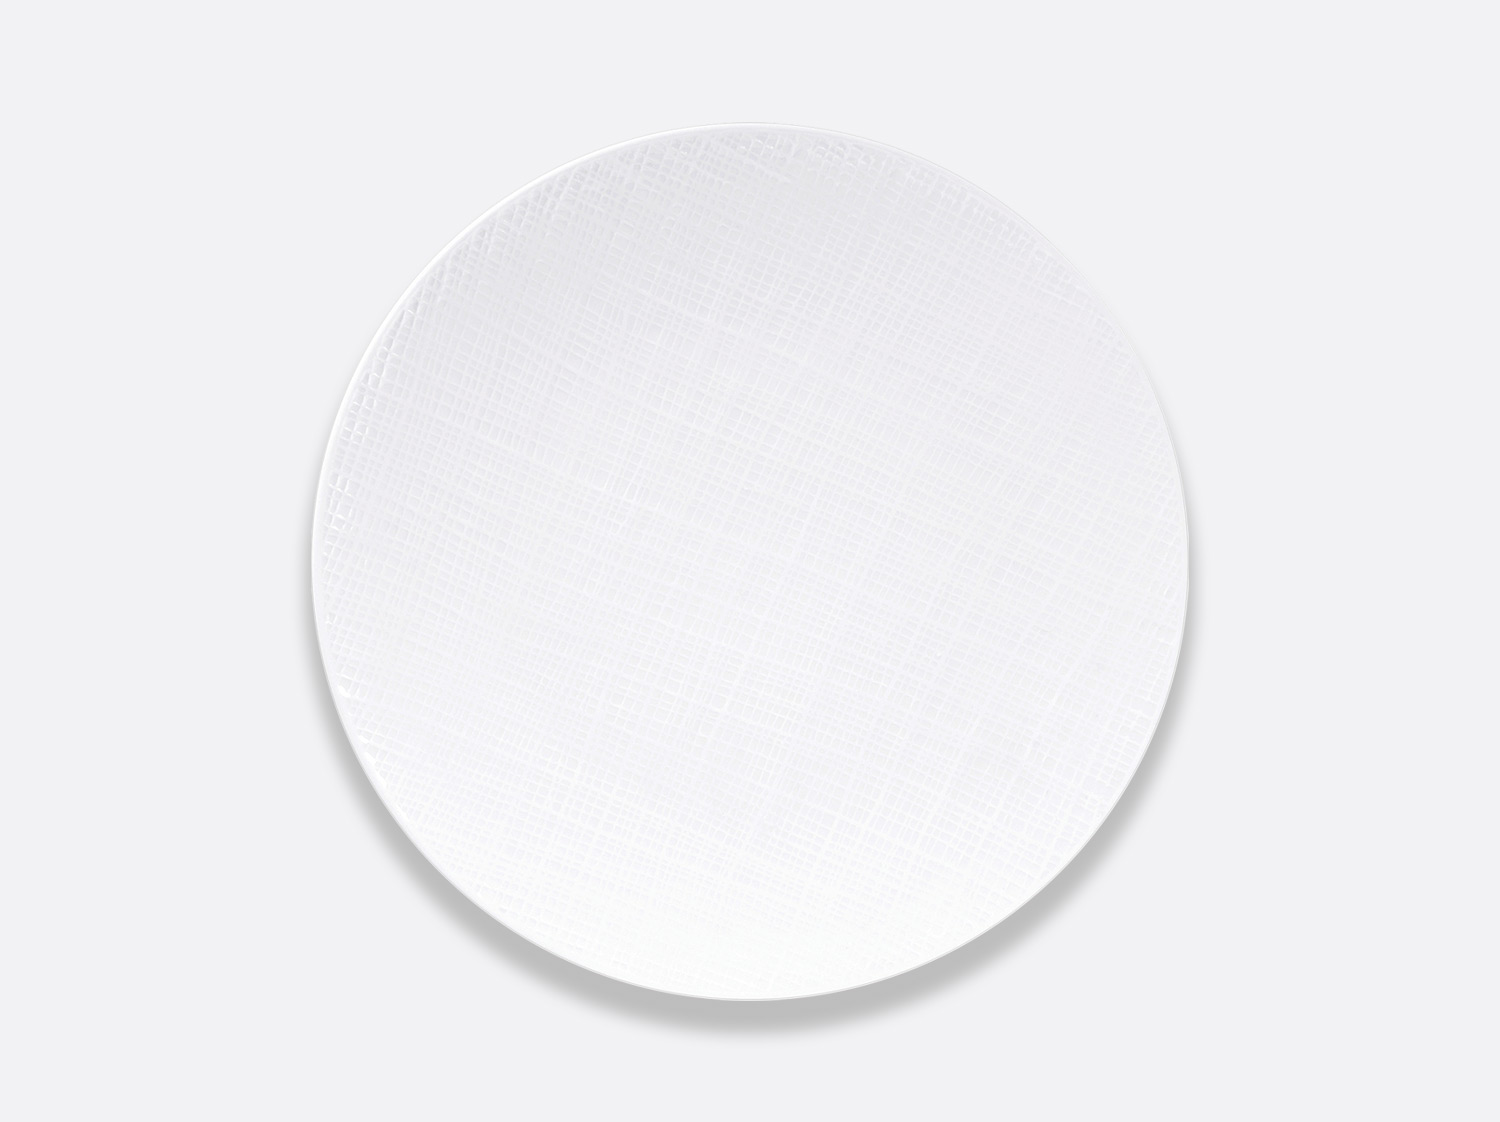 Assiette coupe 21 cm en porcelaine de la collection Organza Bernardaud